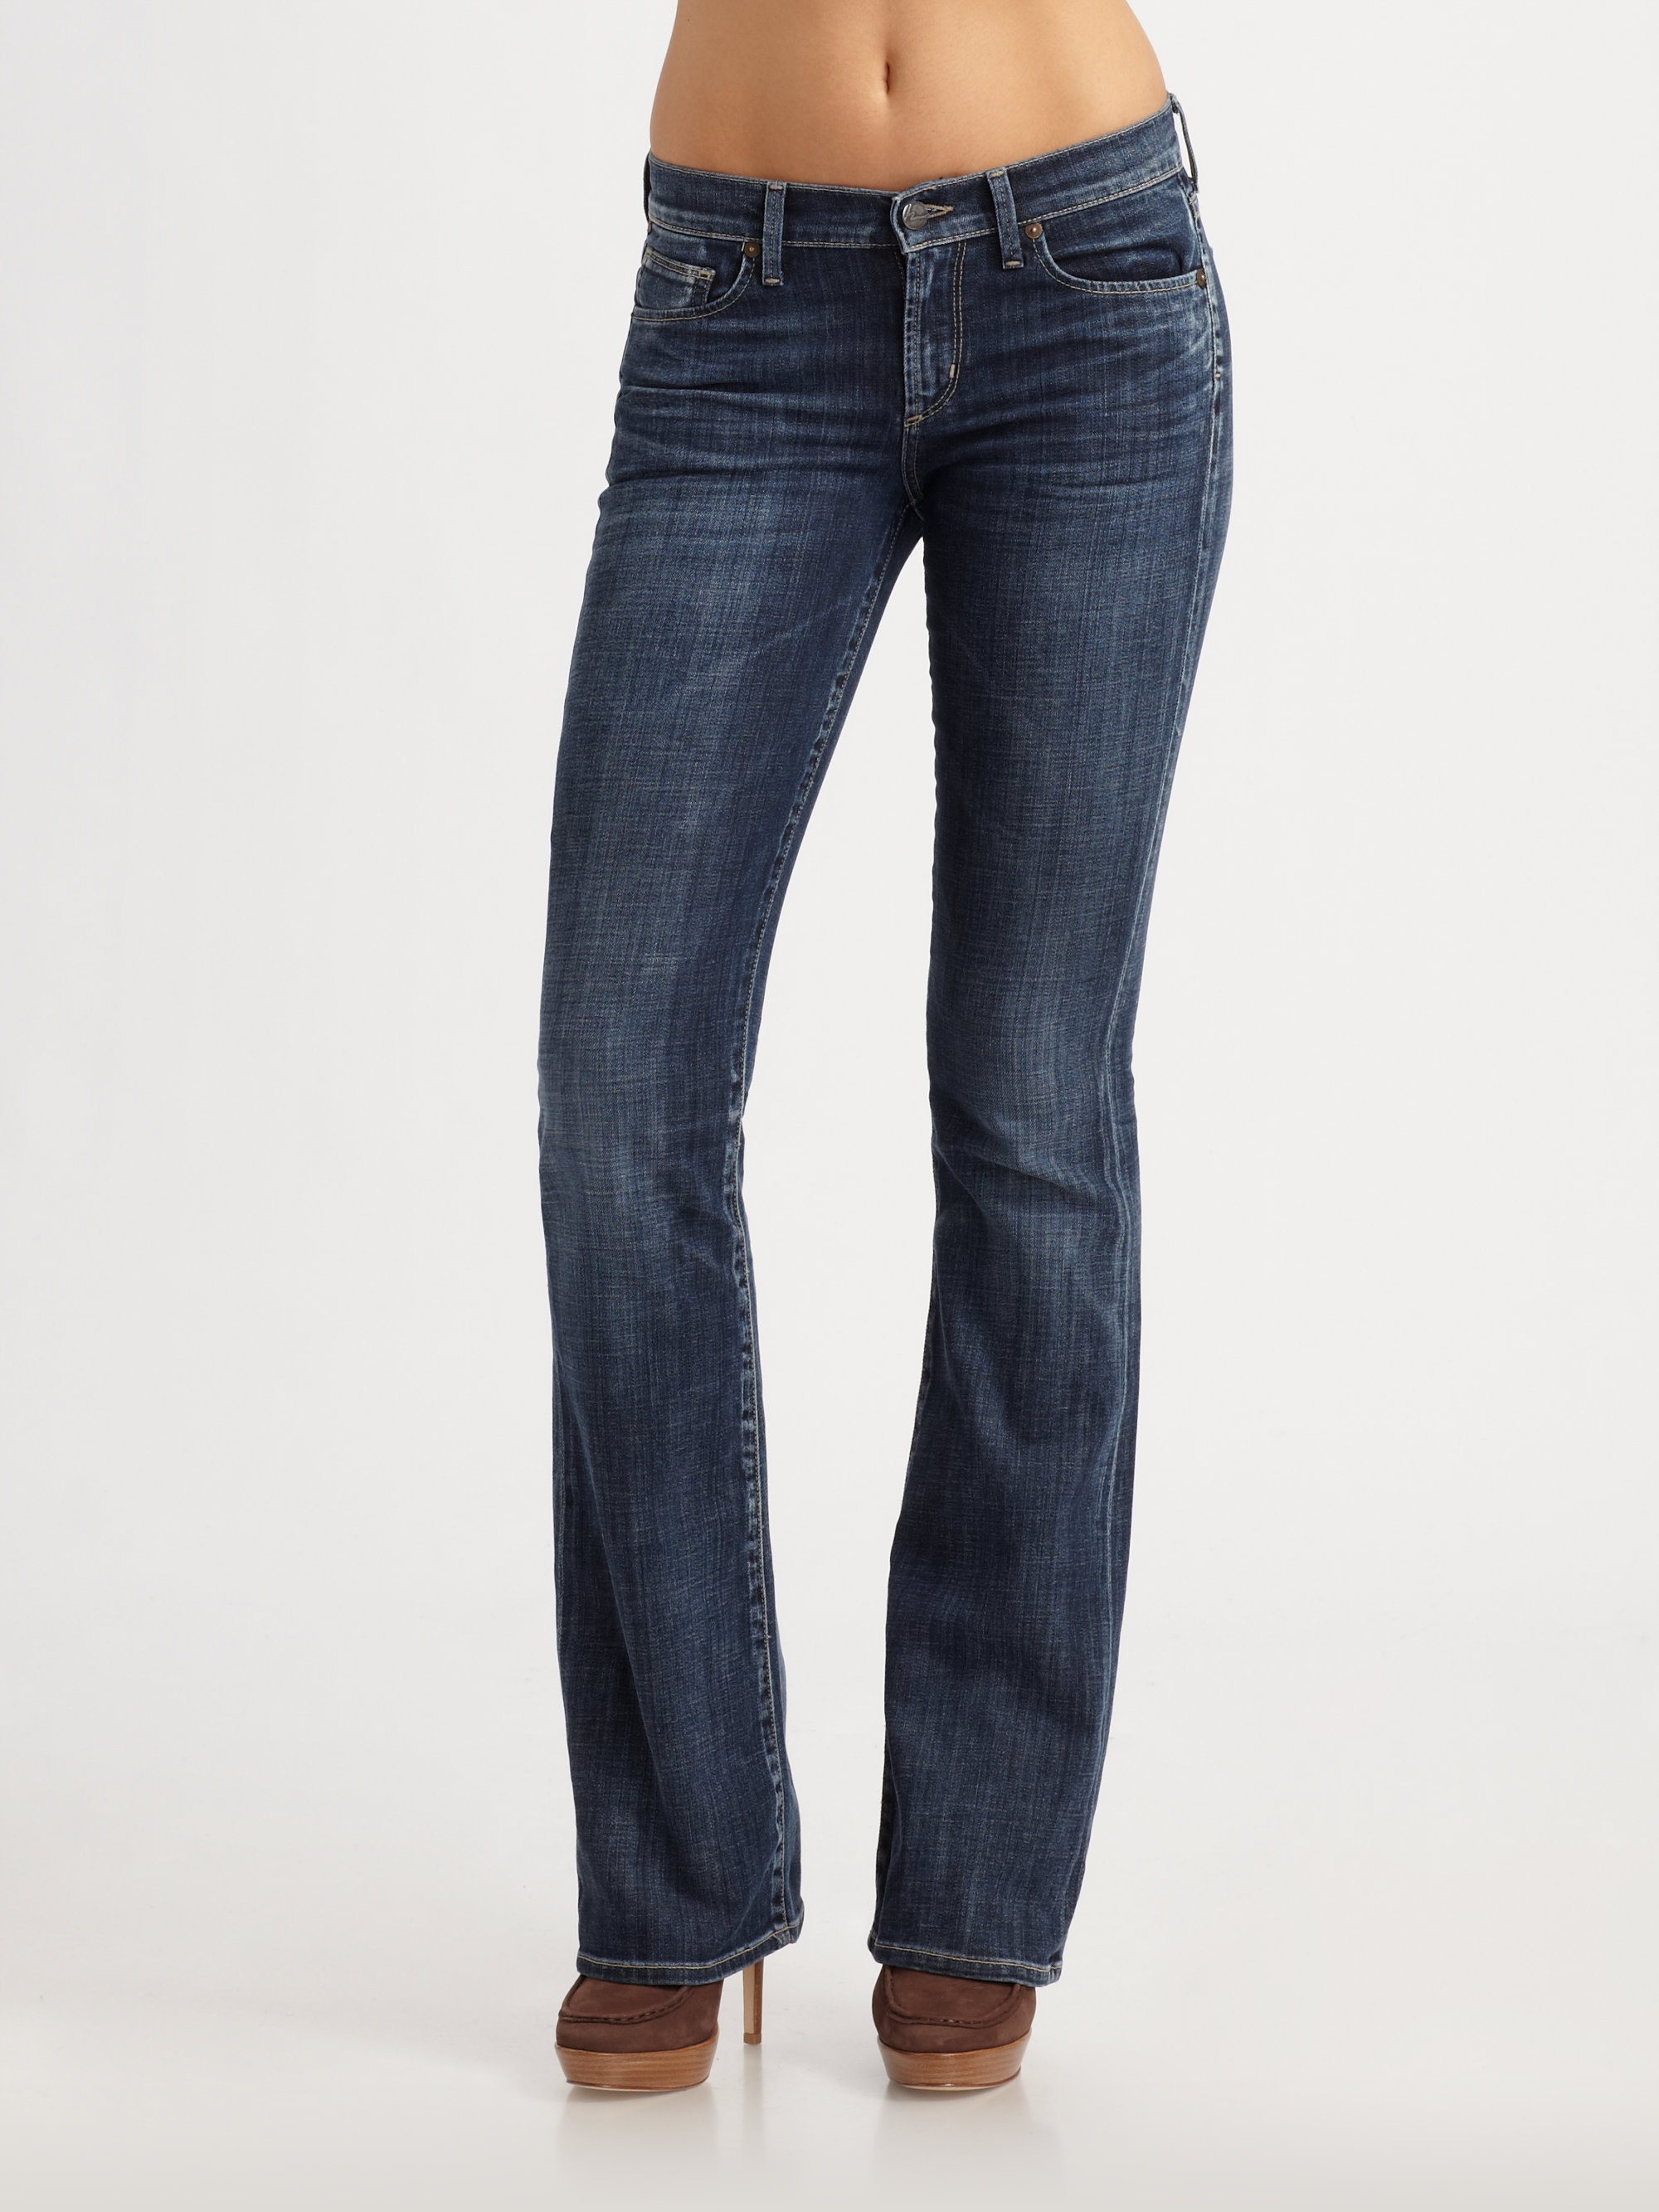 citizens of humanity kelly bootcut jeans in blue cassidy. Black Bedroom Furniture Sets. Home Design Ideas